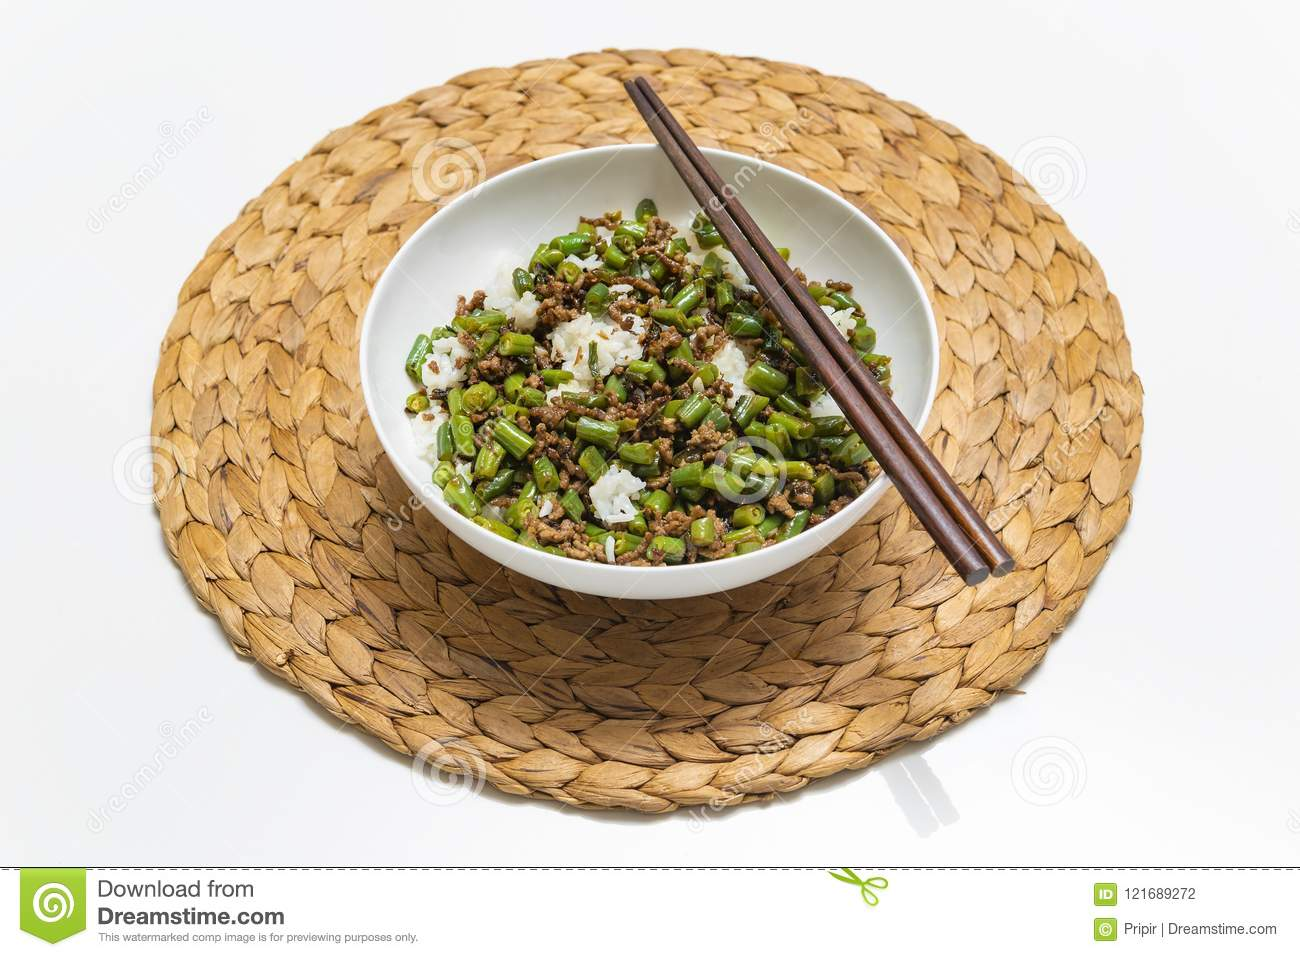 Bowl of minced beef with round beans and rice, with chopsticks on straw mat